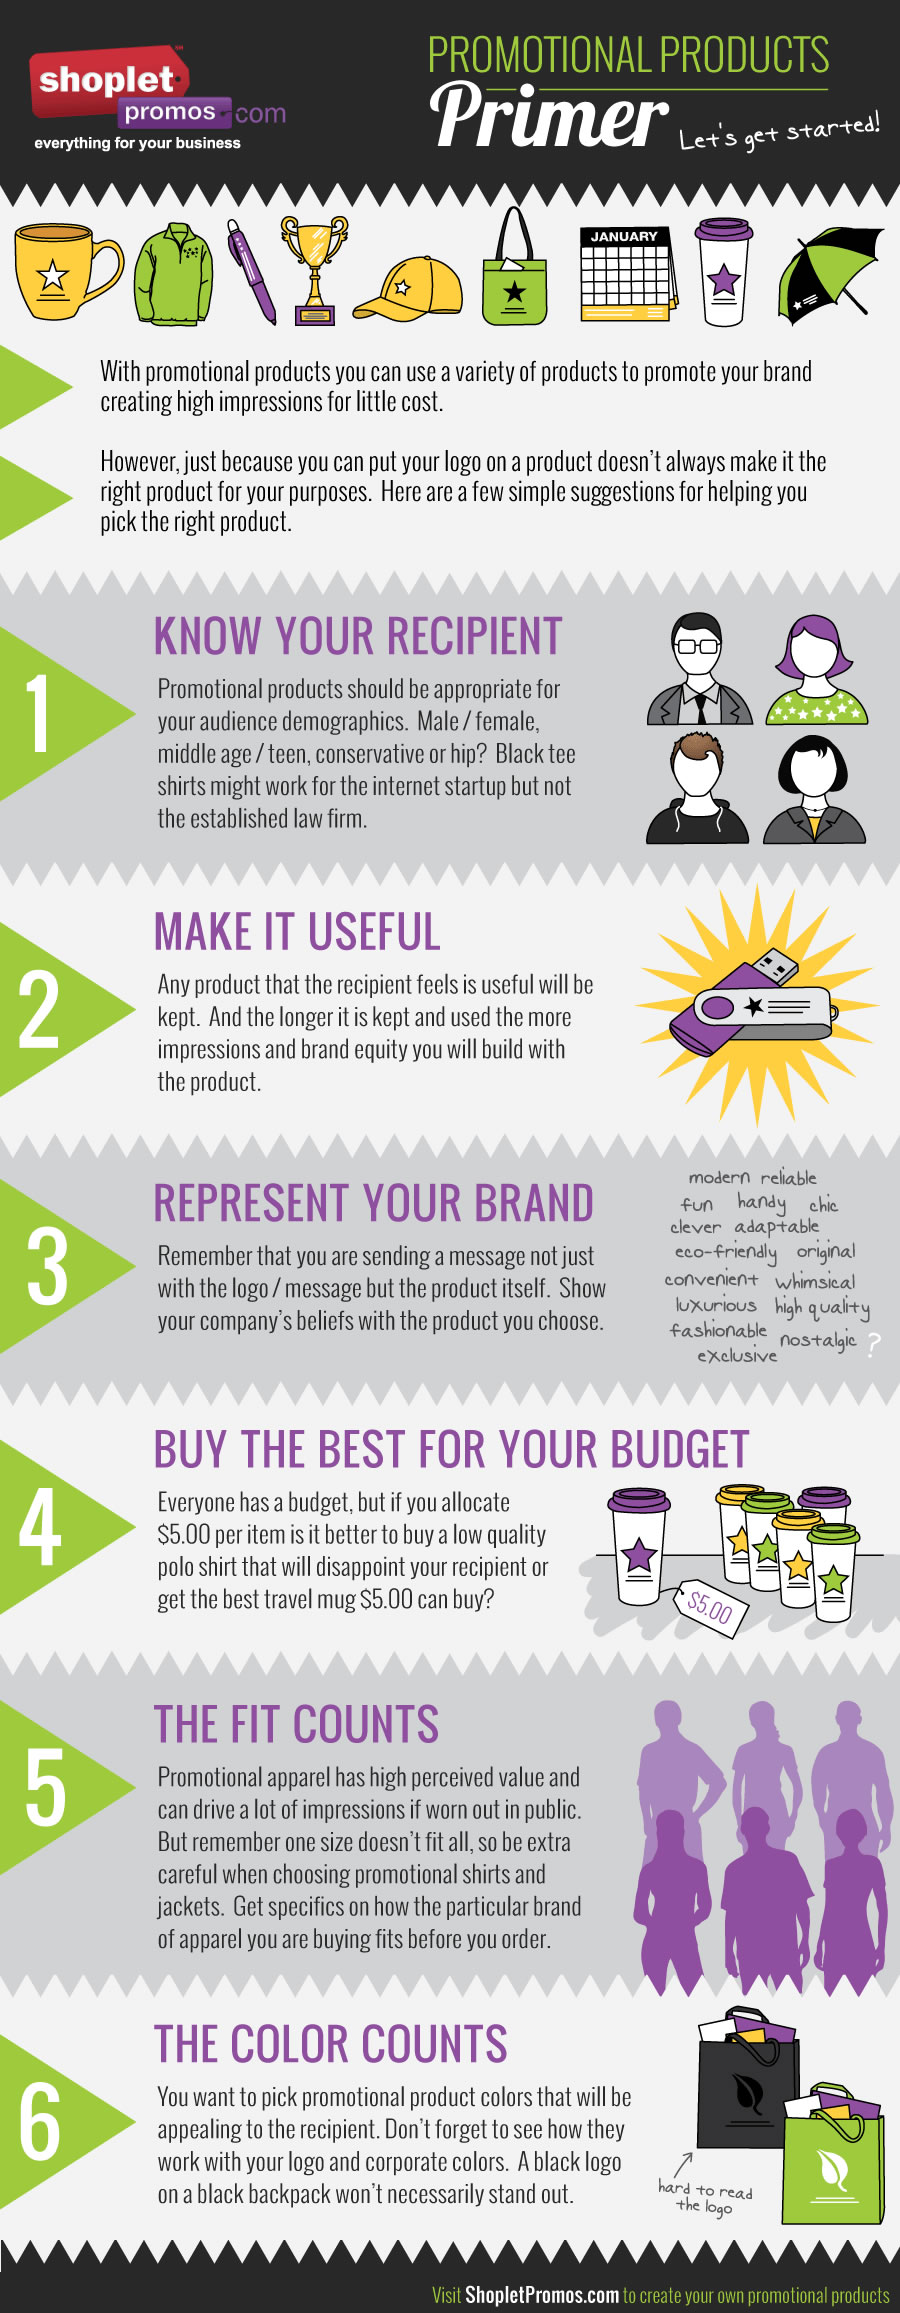 shoplet promos promo products primer infographic Promotional Products Infographic